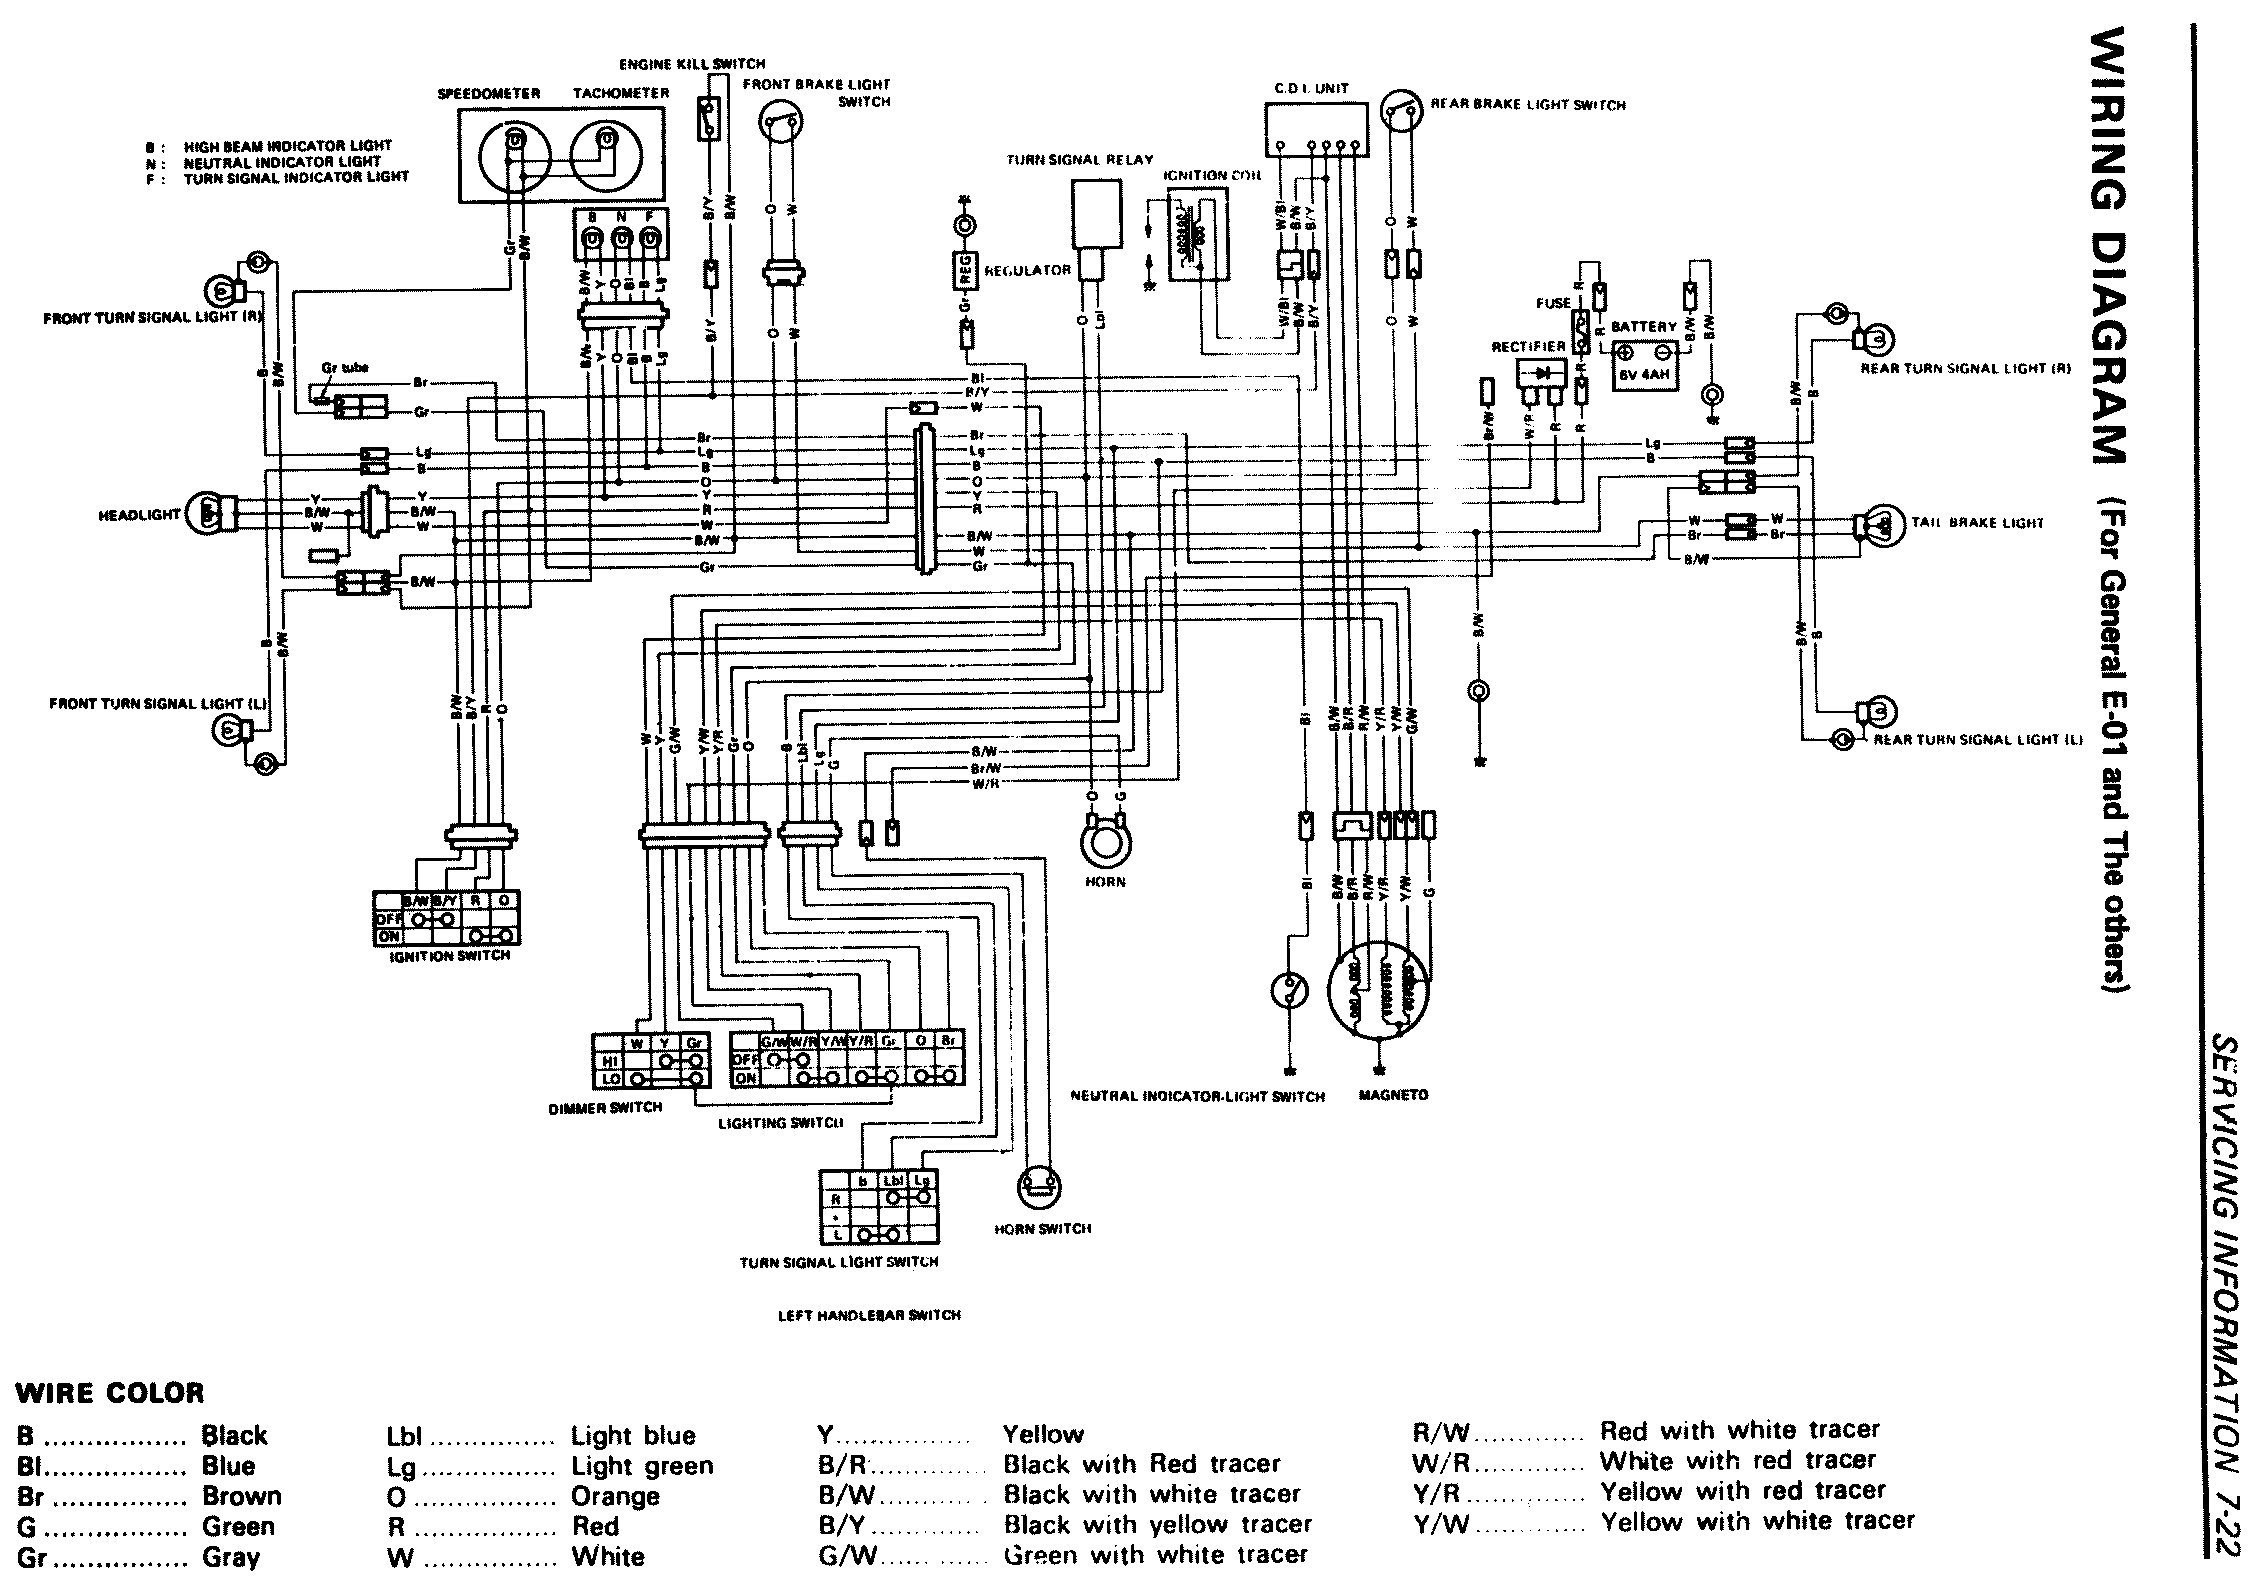 spx stone hydraulic pump wiring diagram Collection-12v hydraulic pump wiring diagram Download 1999 Audi A4 Quattro Wiring Diagram Save Pin Wiring 12-e